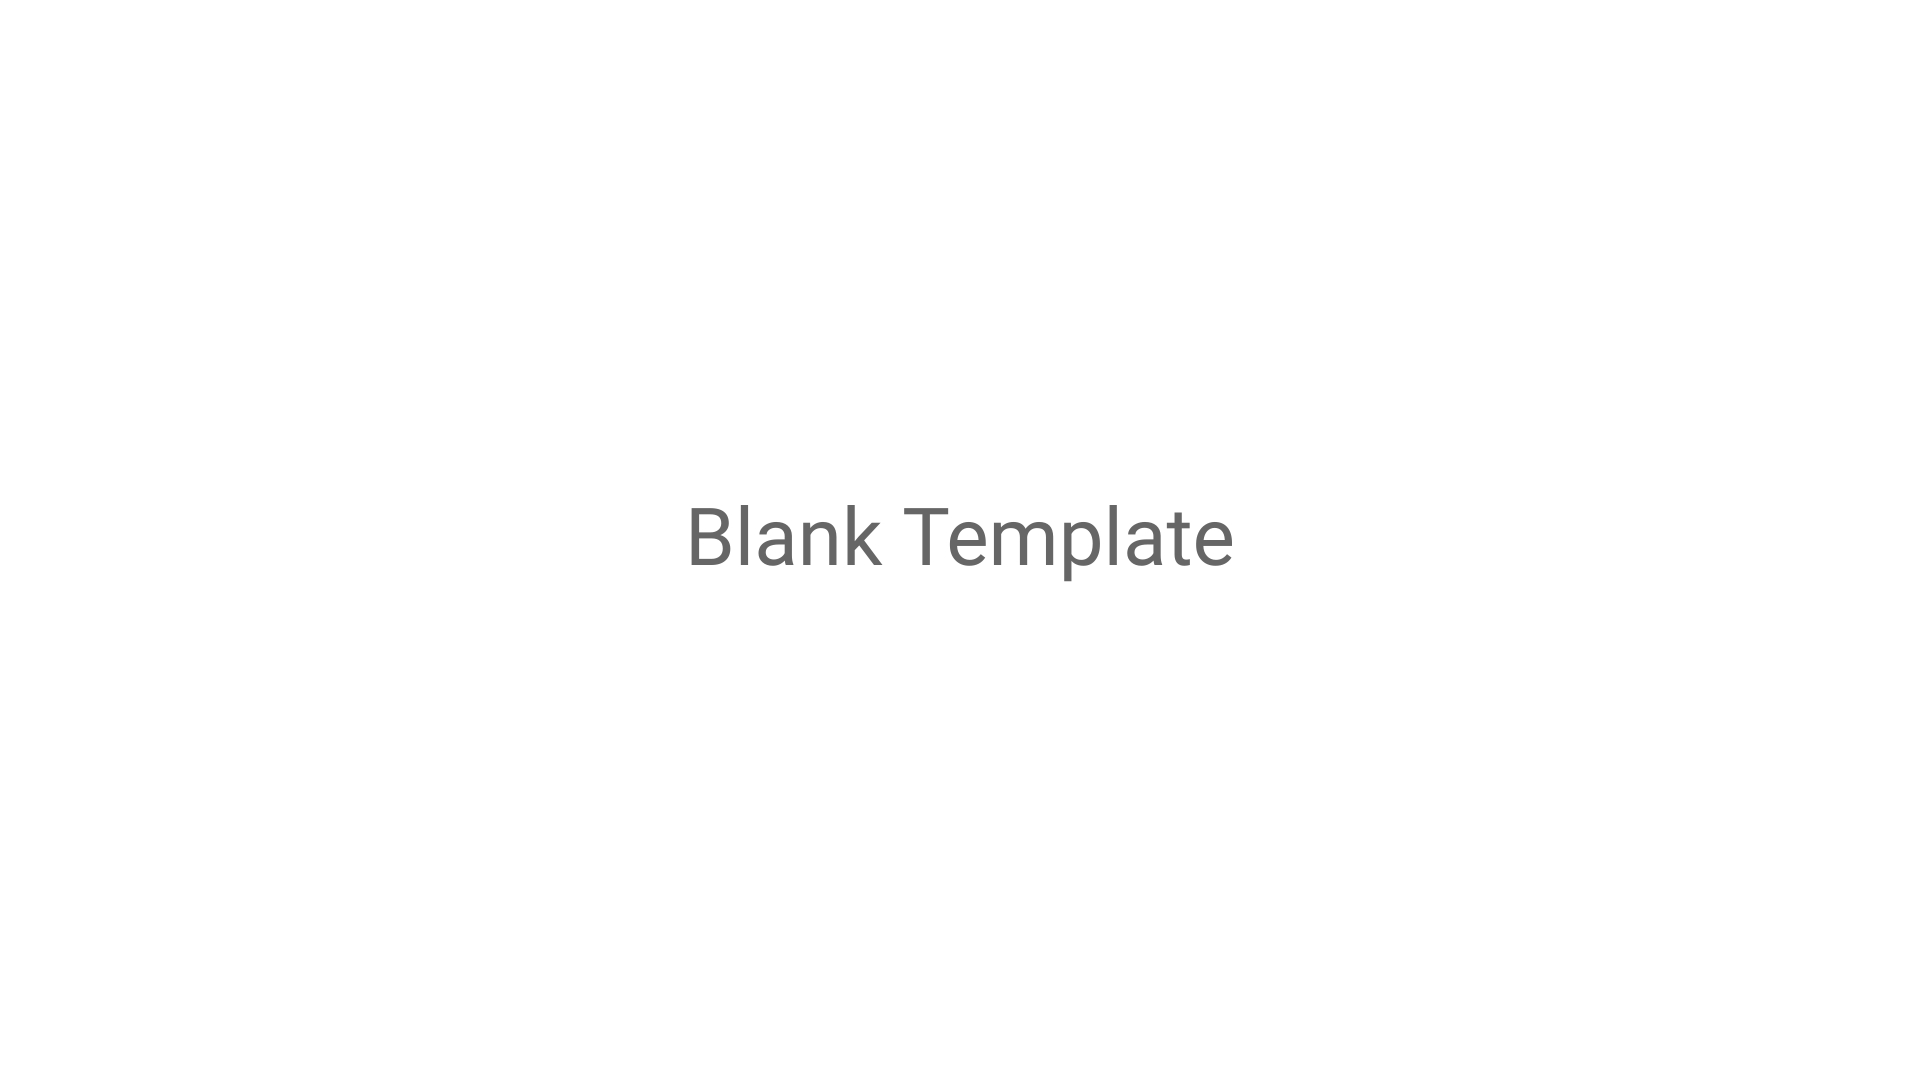 Blank Template Charts Wide Template